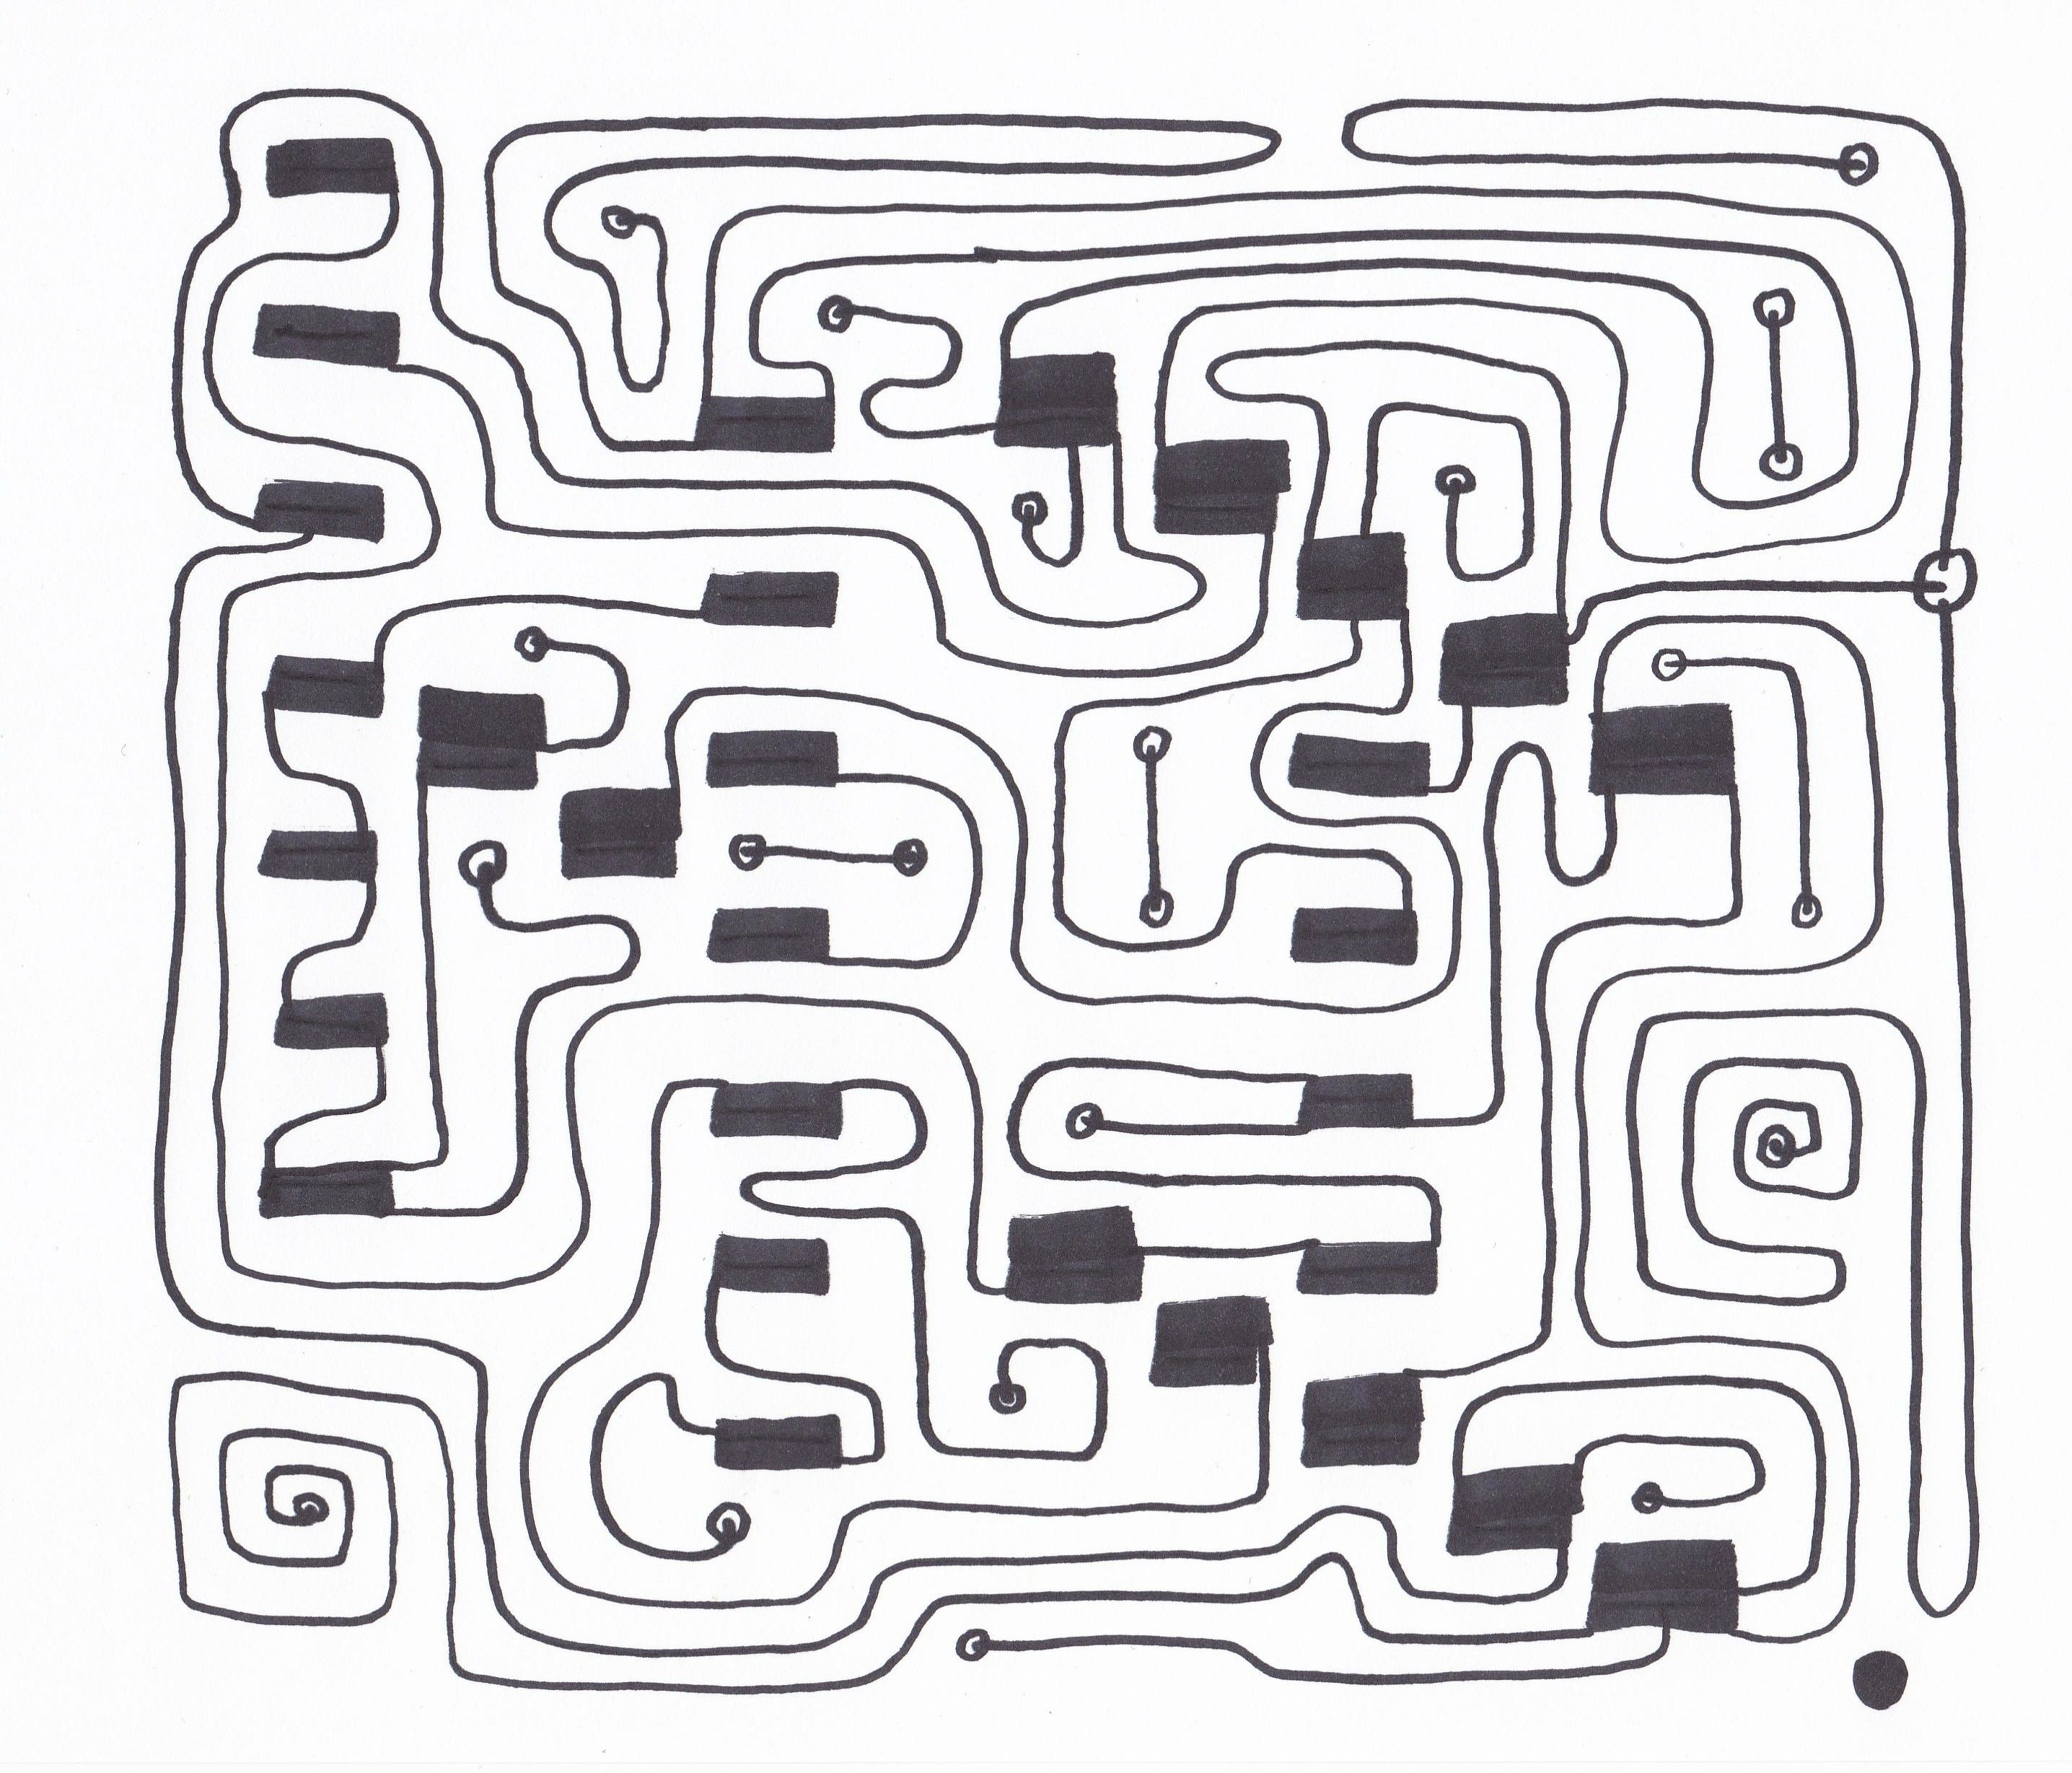 simple circuits simple maze game created by trogfishaz